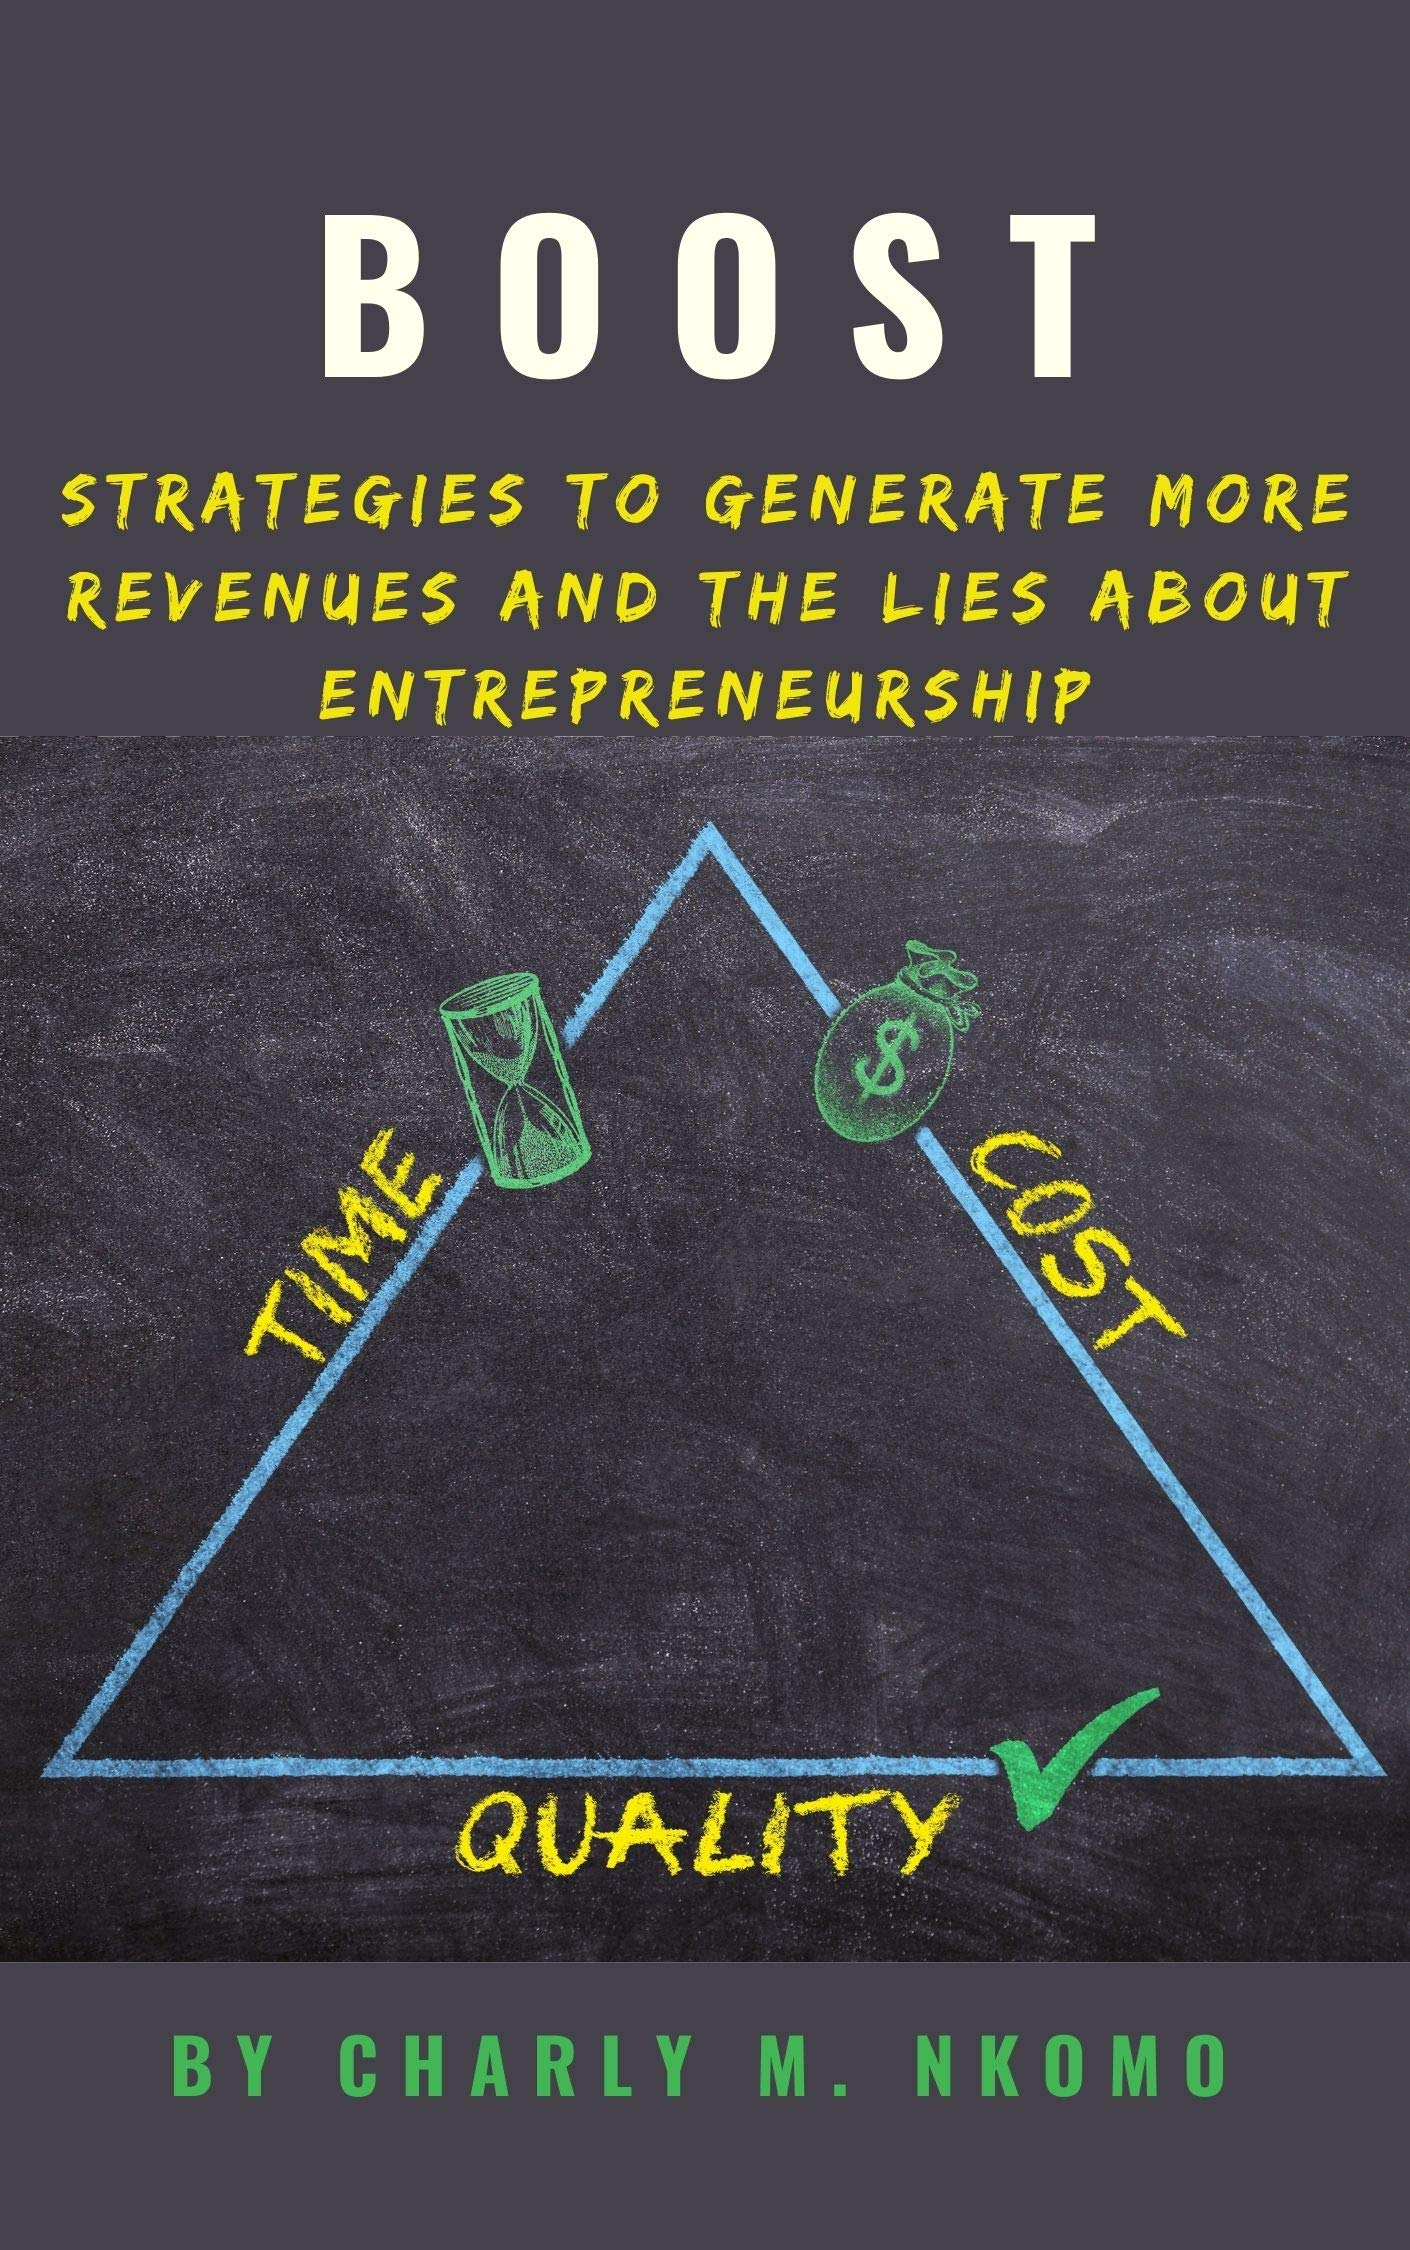 BOOST: Strategies to Generate More Revenues and The Lies About Entrepreneurship